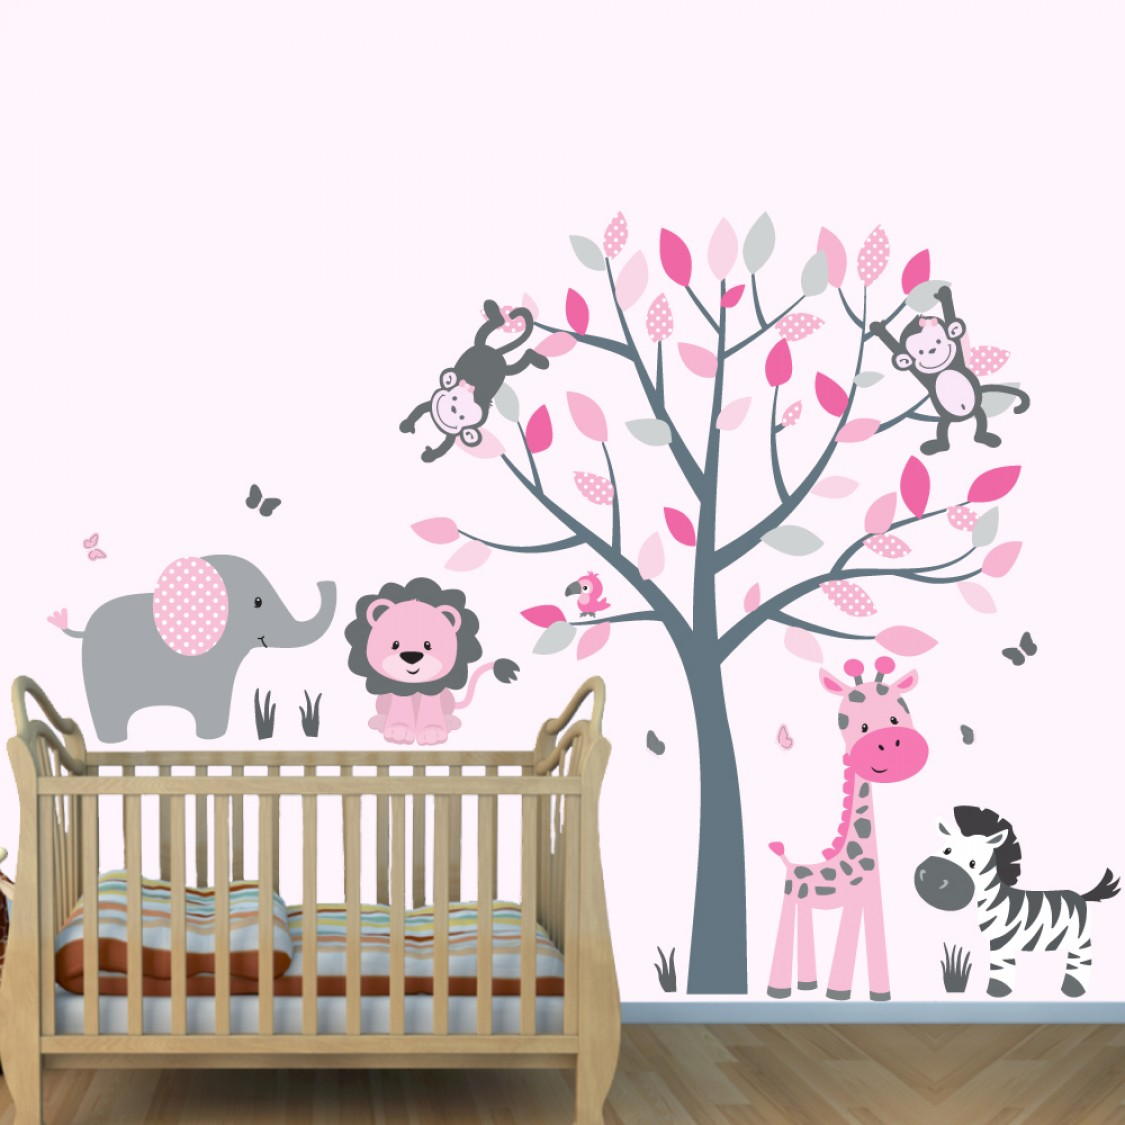 Gray Orange Wall Decals Jungle With Elephant Wall Art For Boys Rooms - Nursery wall decals jungle